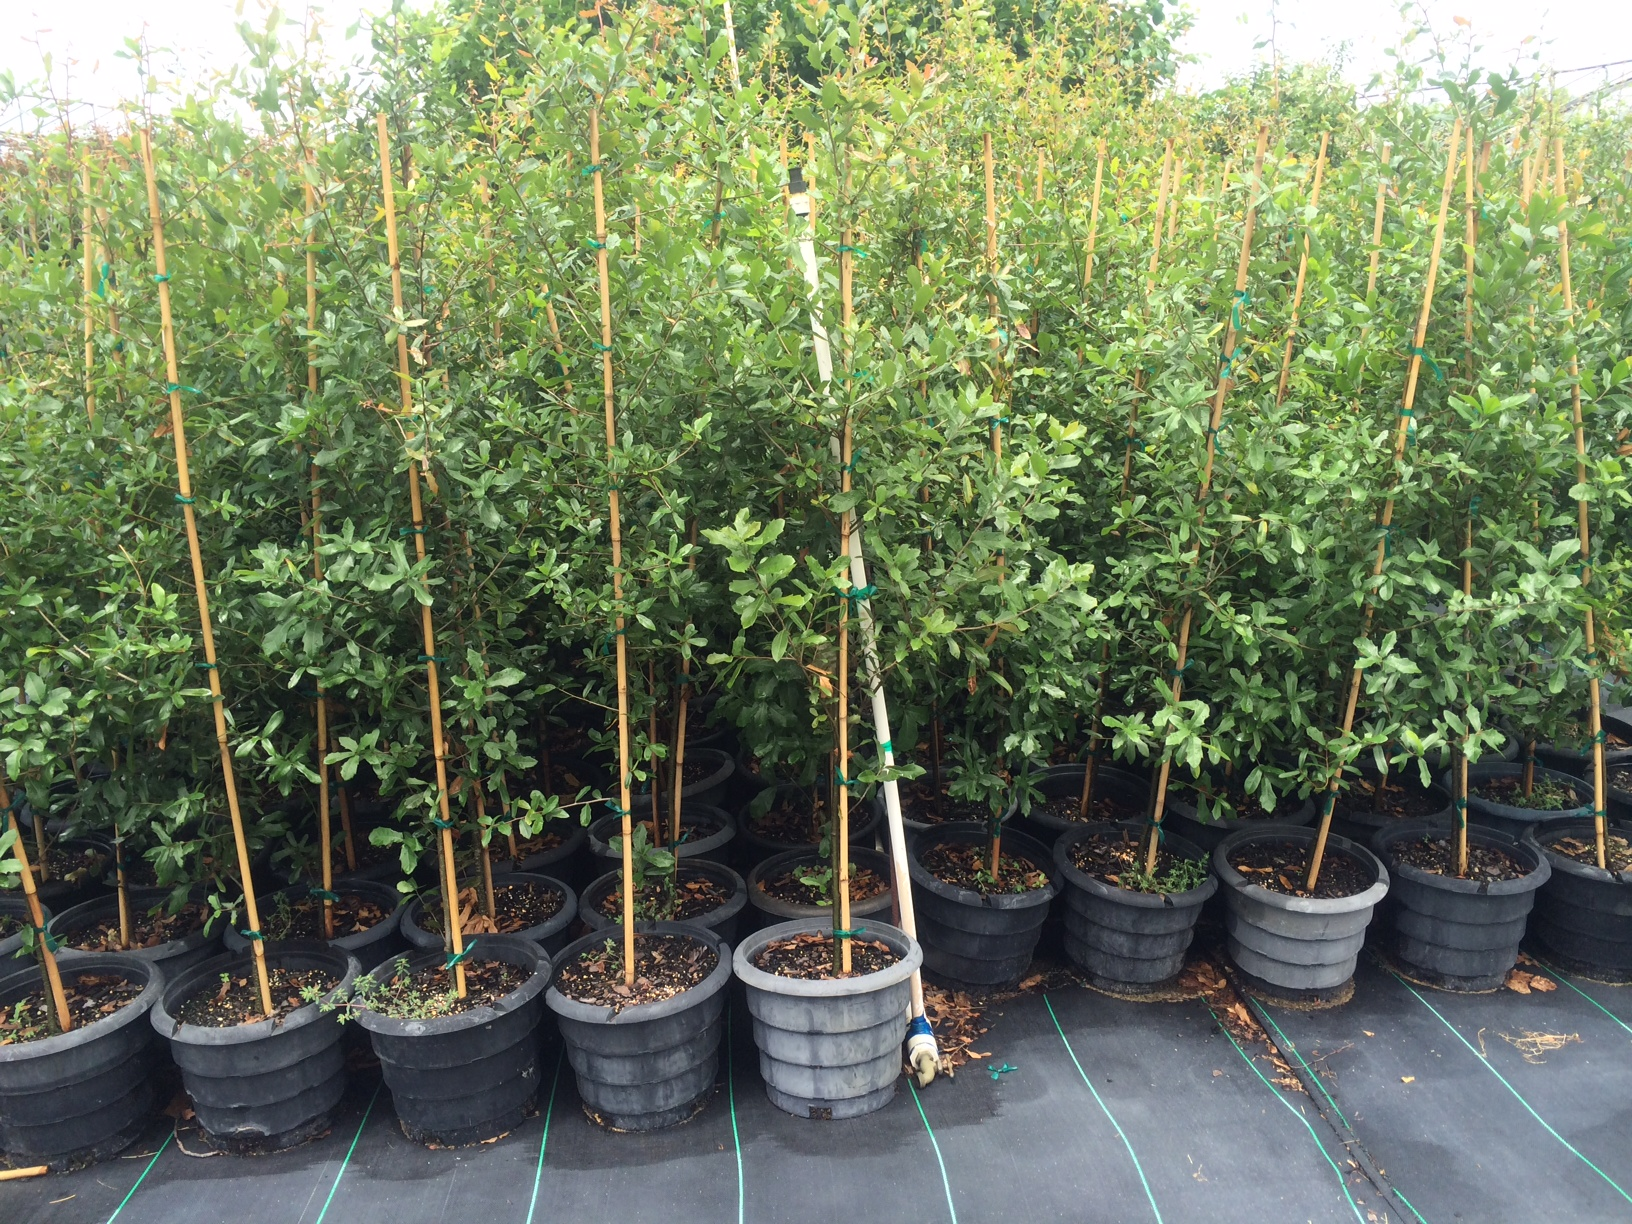 375 of Galveston's most resilient tree children, grown at  Rennerwood Tree Farm